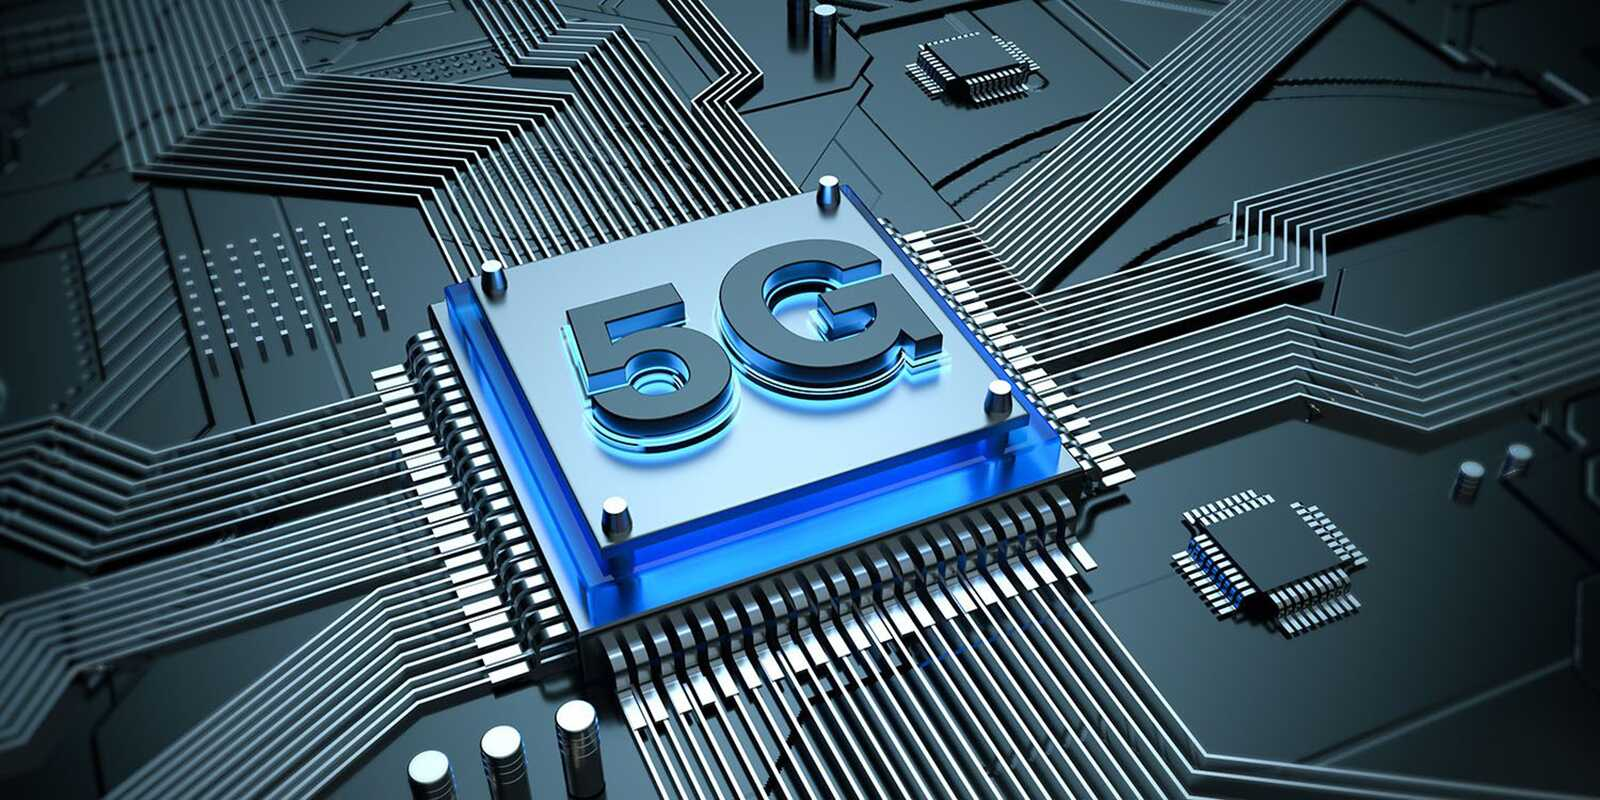 Silicon III-V Chips Needed to Enable 5G Devices - EE Times India